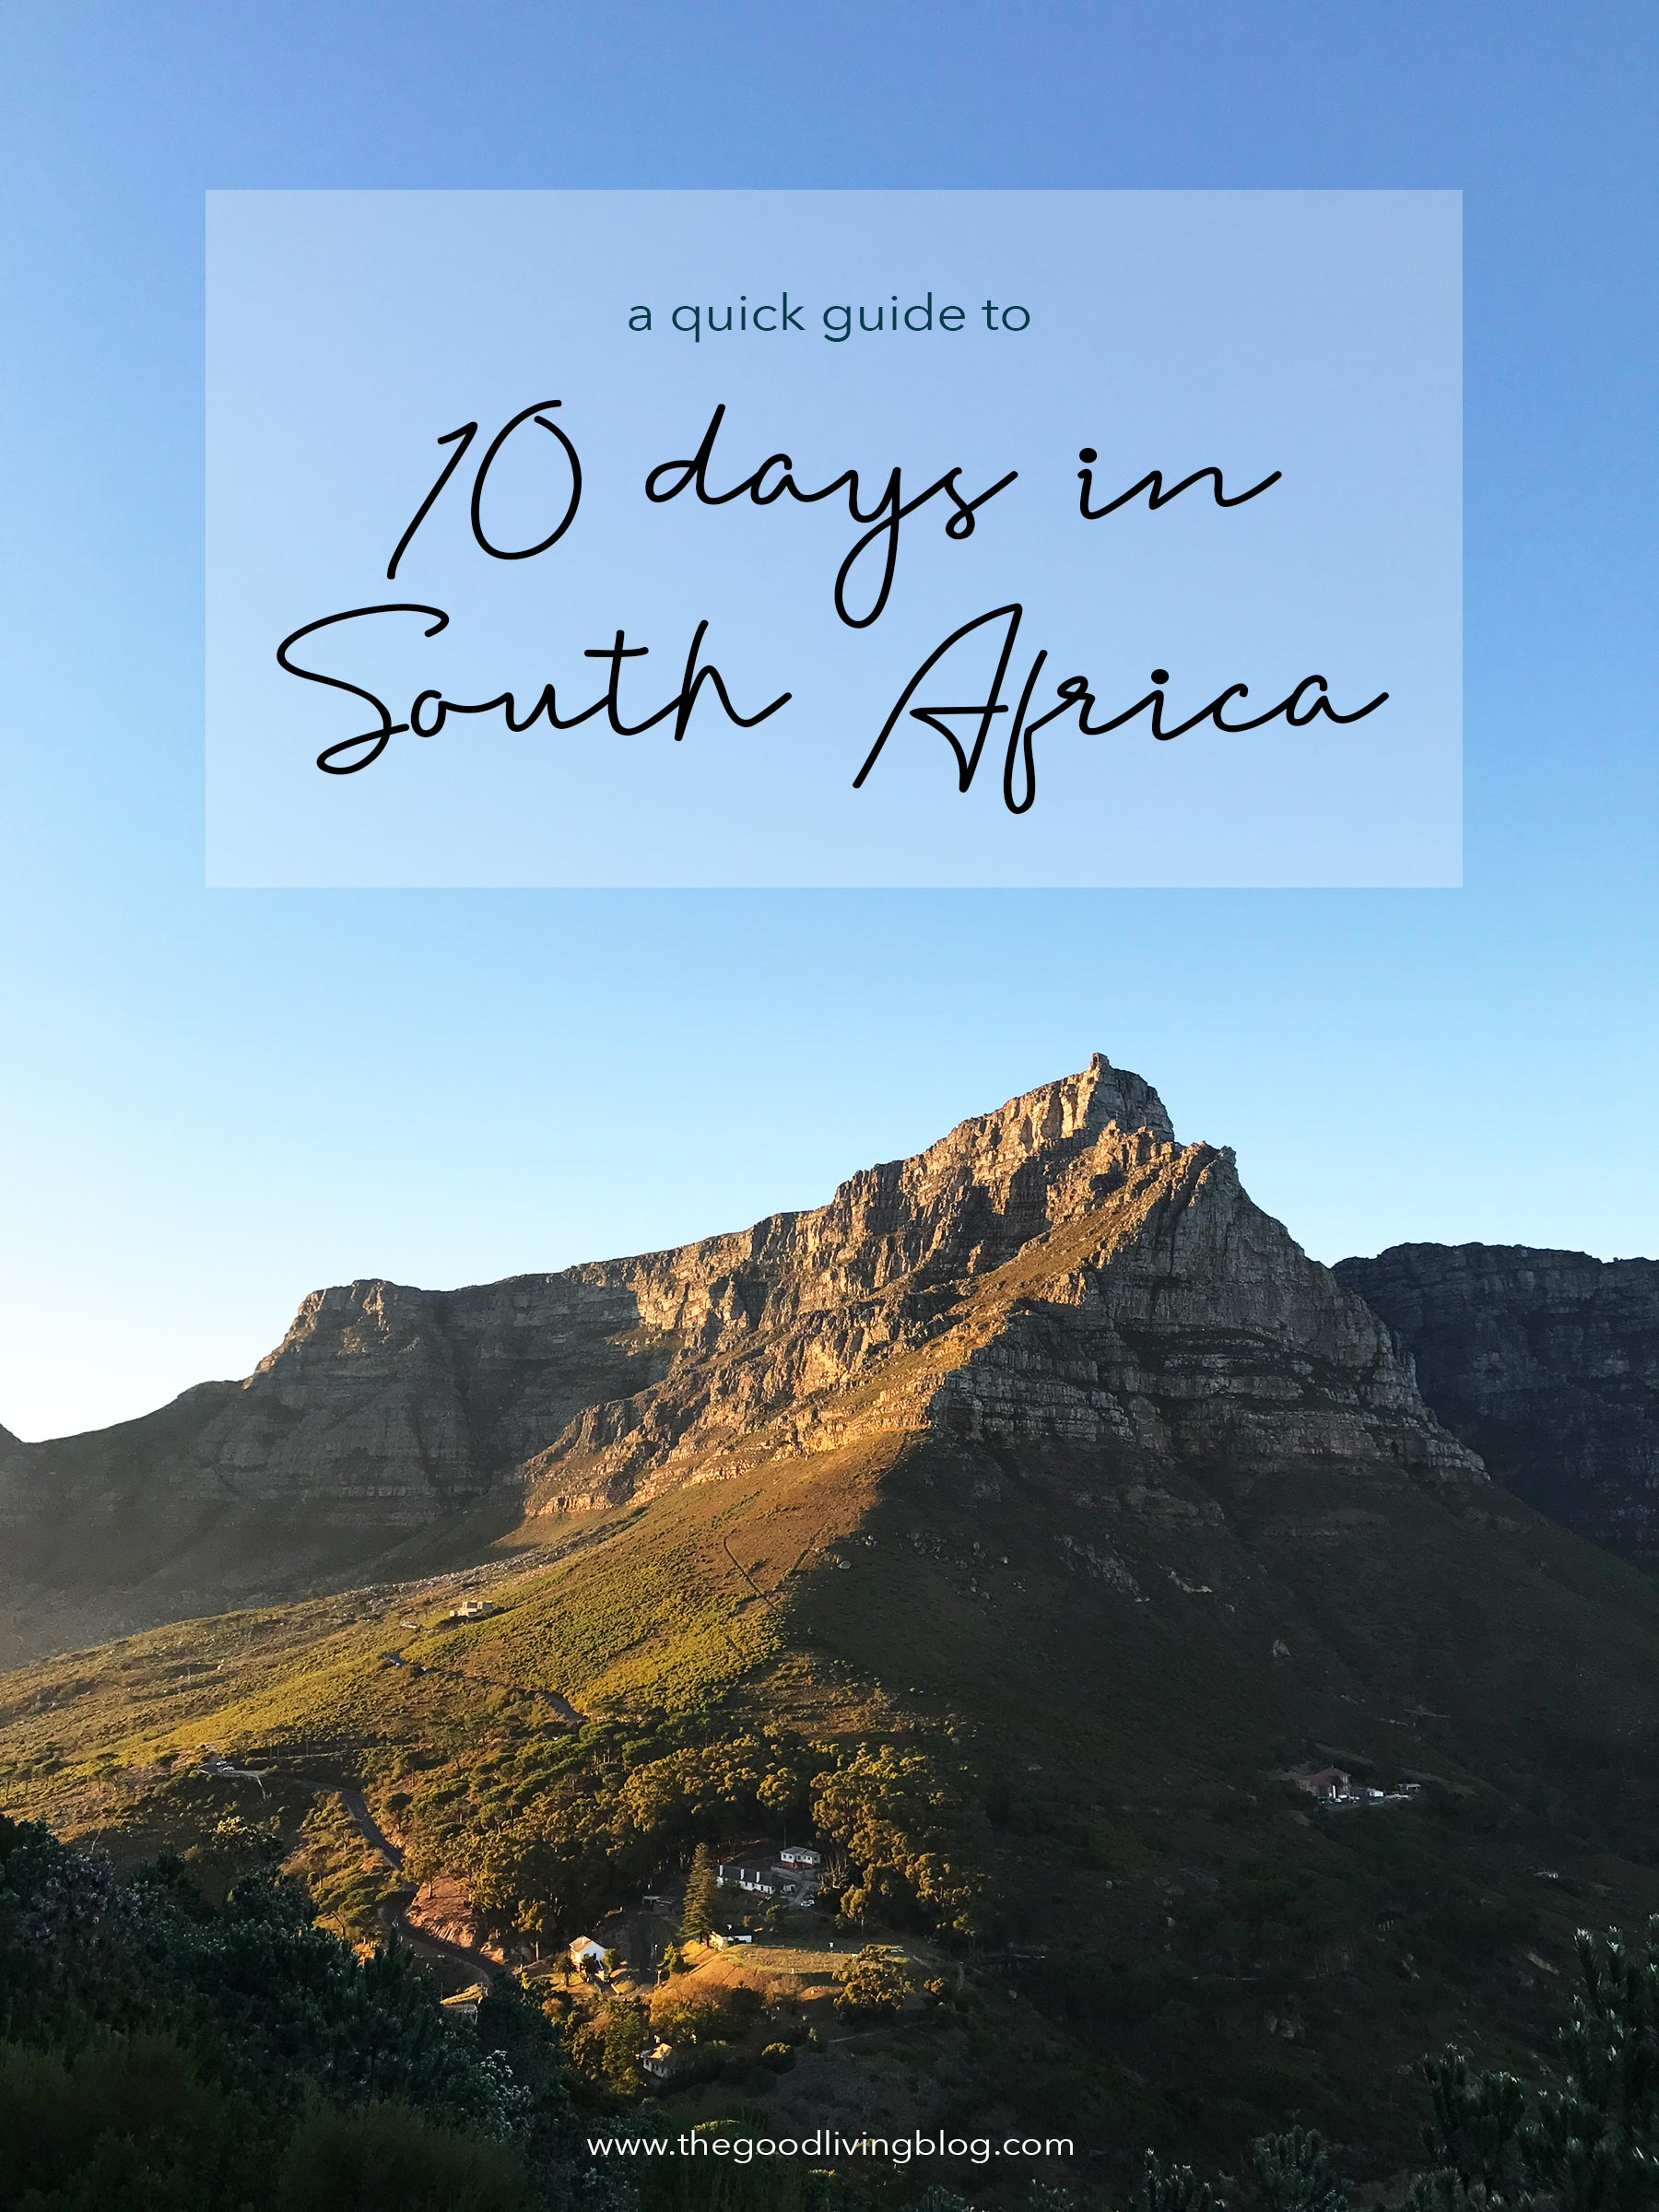 A quick guide to spending 10 days in South Africa. #travel #southafrica #10daysinsouthafrica #capetown #safari #krugernationalpark #franschhoek